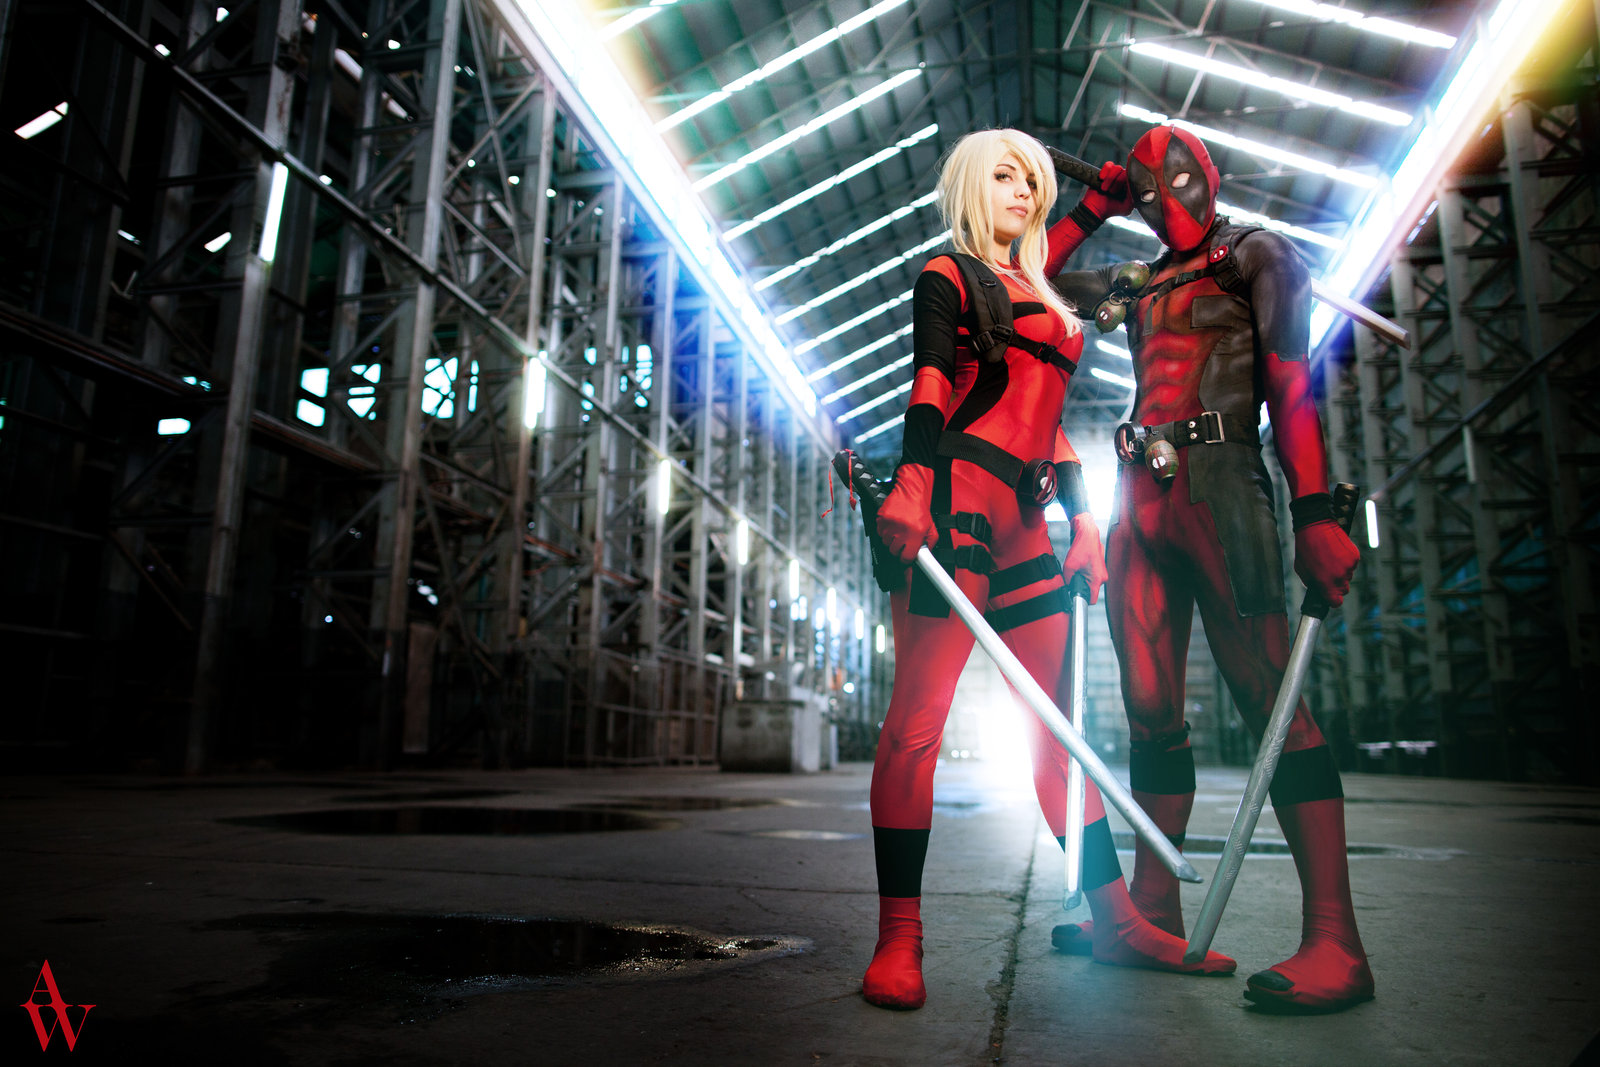 Two deadpool cosplayers taken against a warehouse background